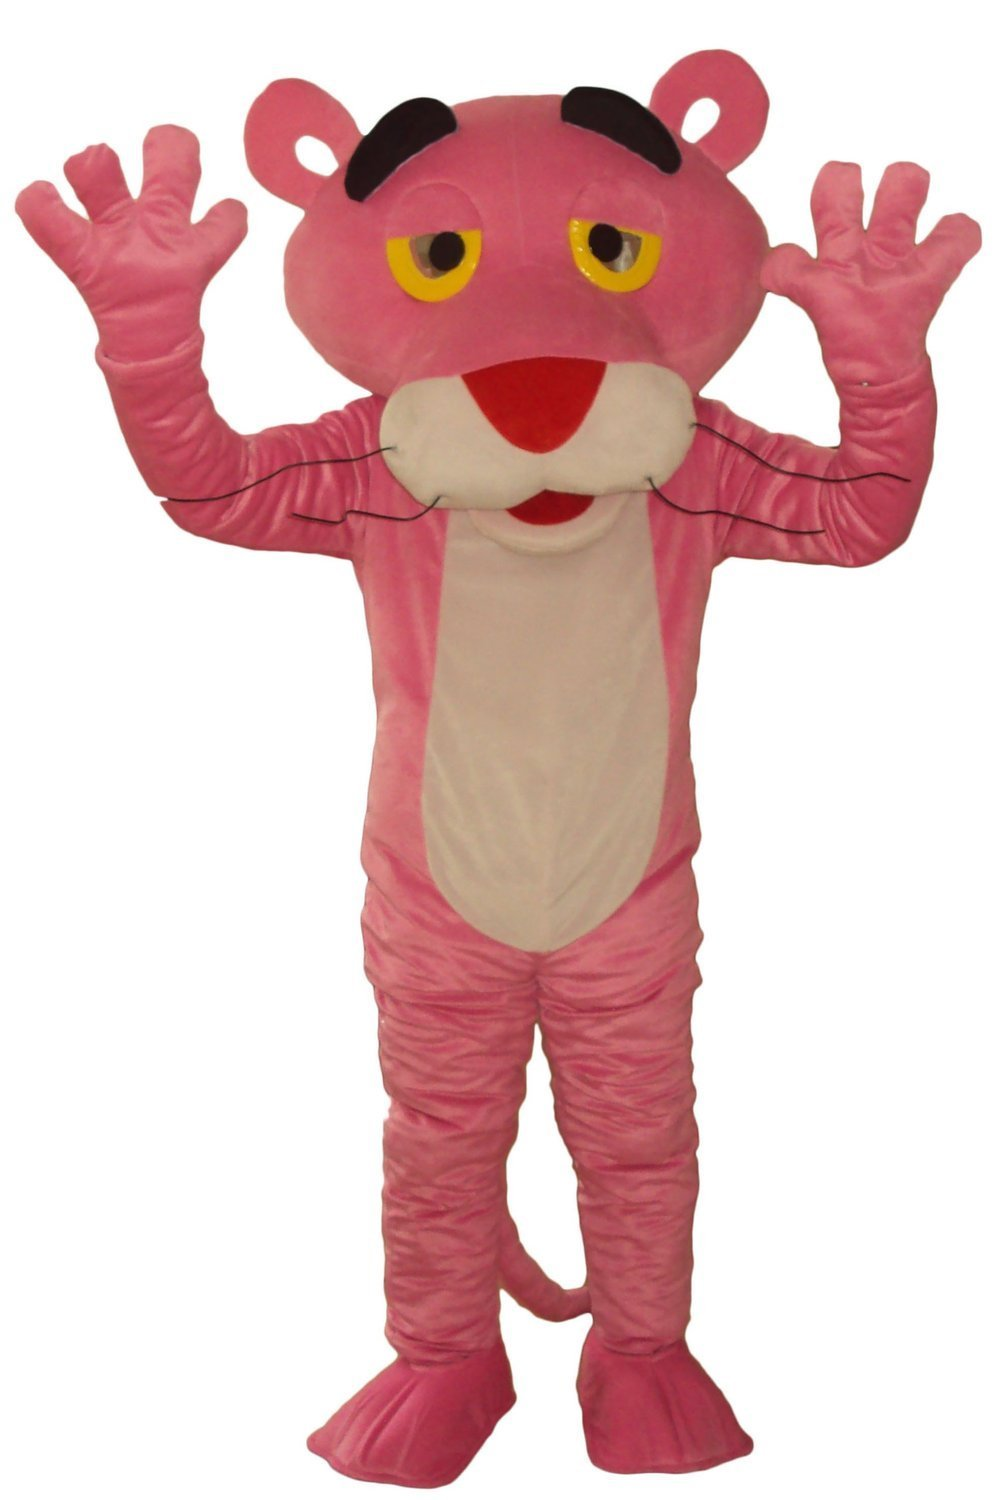 New Arrival Hot Sales Pink Panther Mascot Costume Leopard Mascot Costume Pink Panther Fancy Dress(China (Mainland))